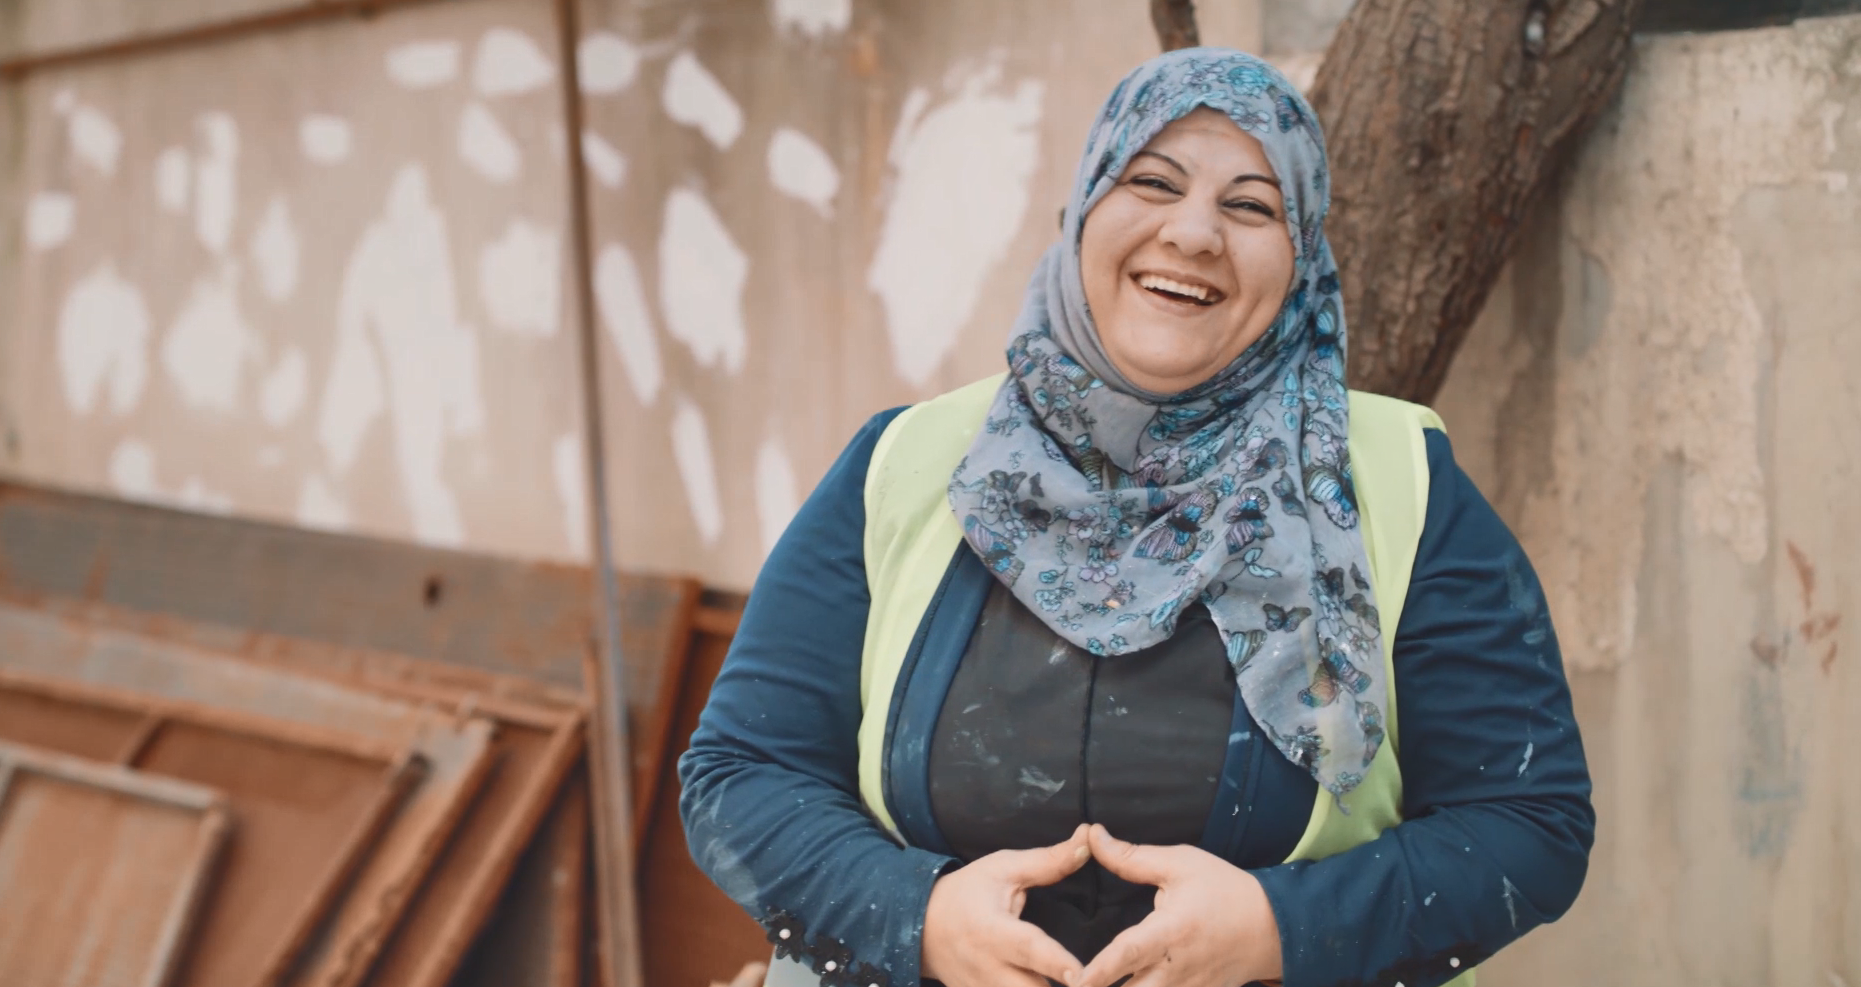 Breaking stereotypes: woman opens home construction business in Jordan